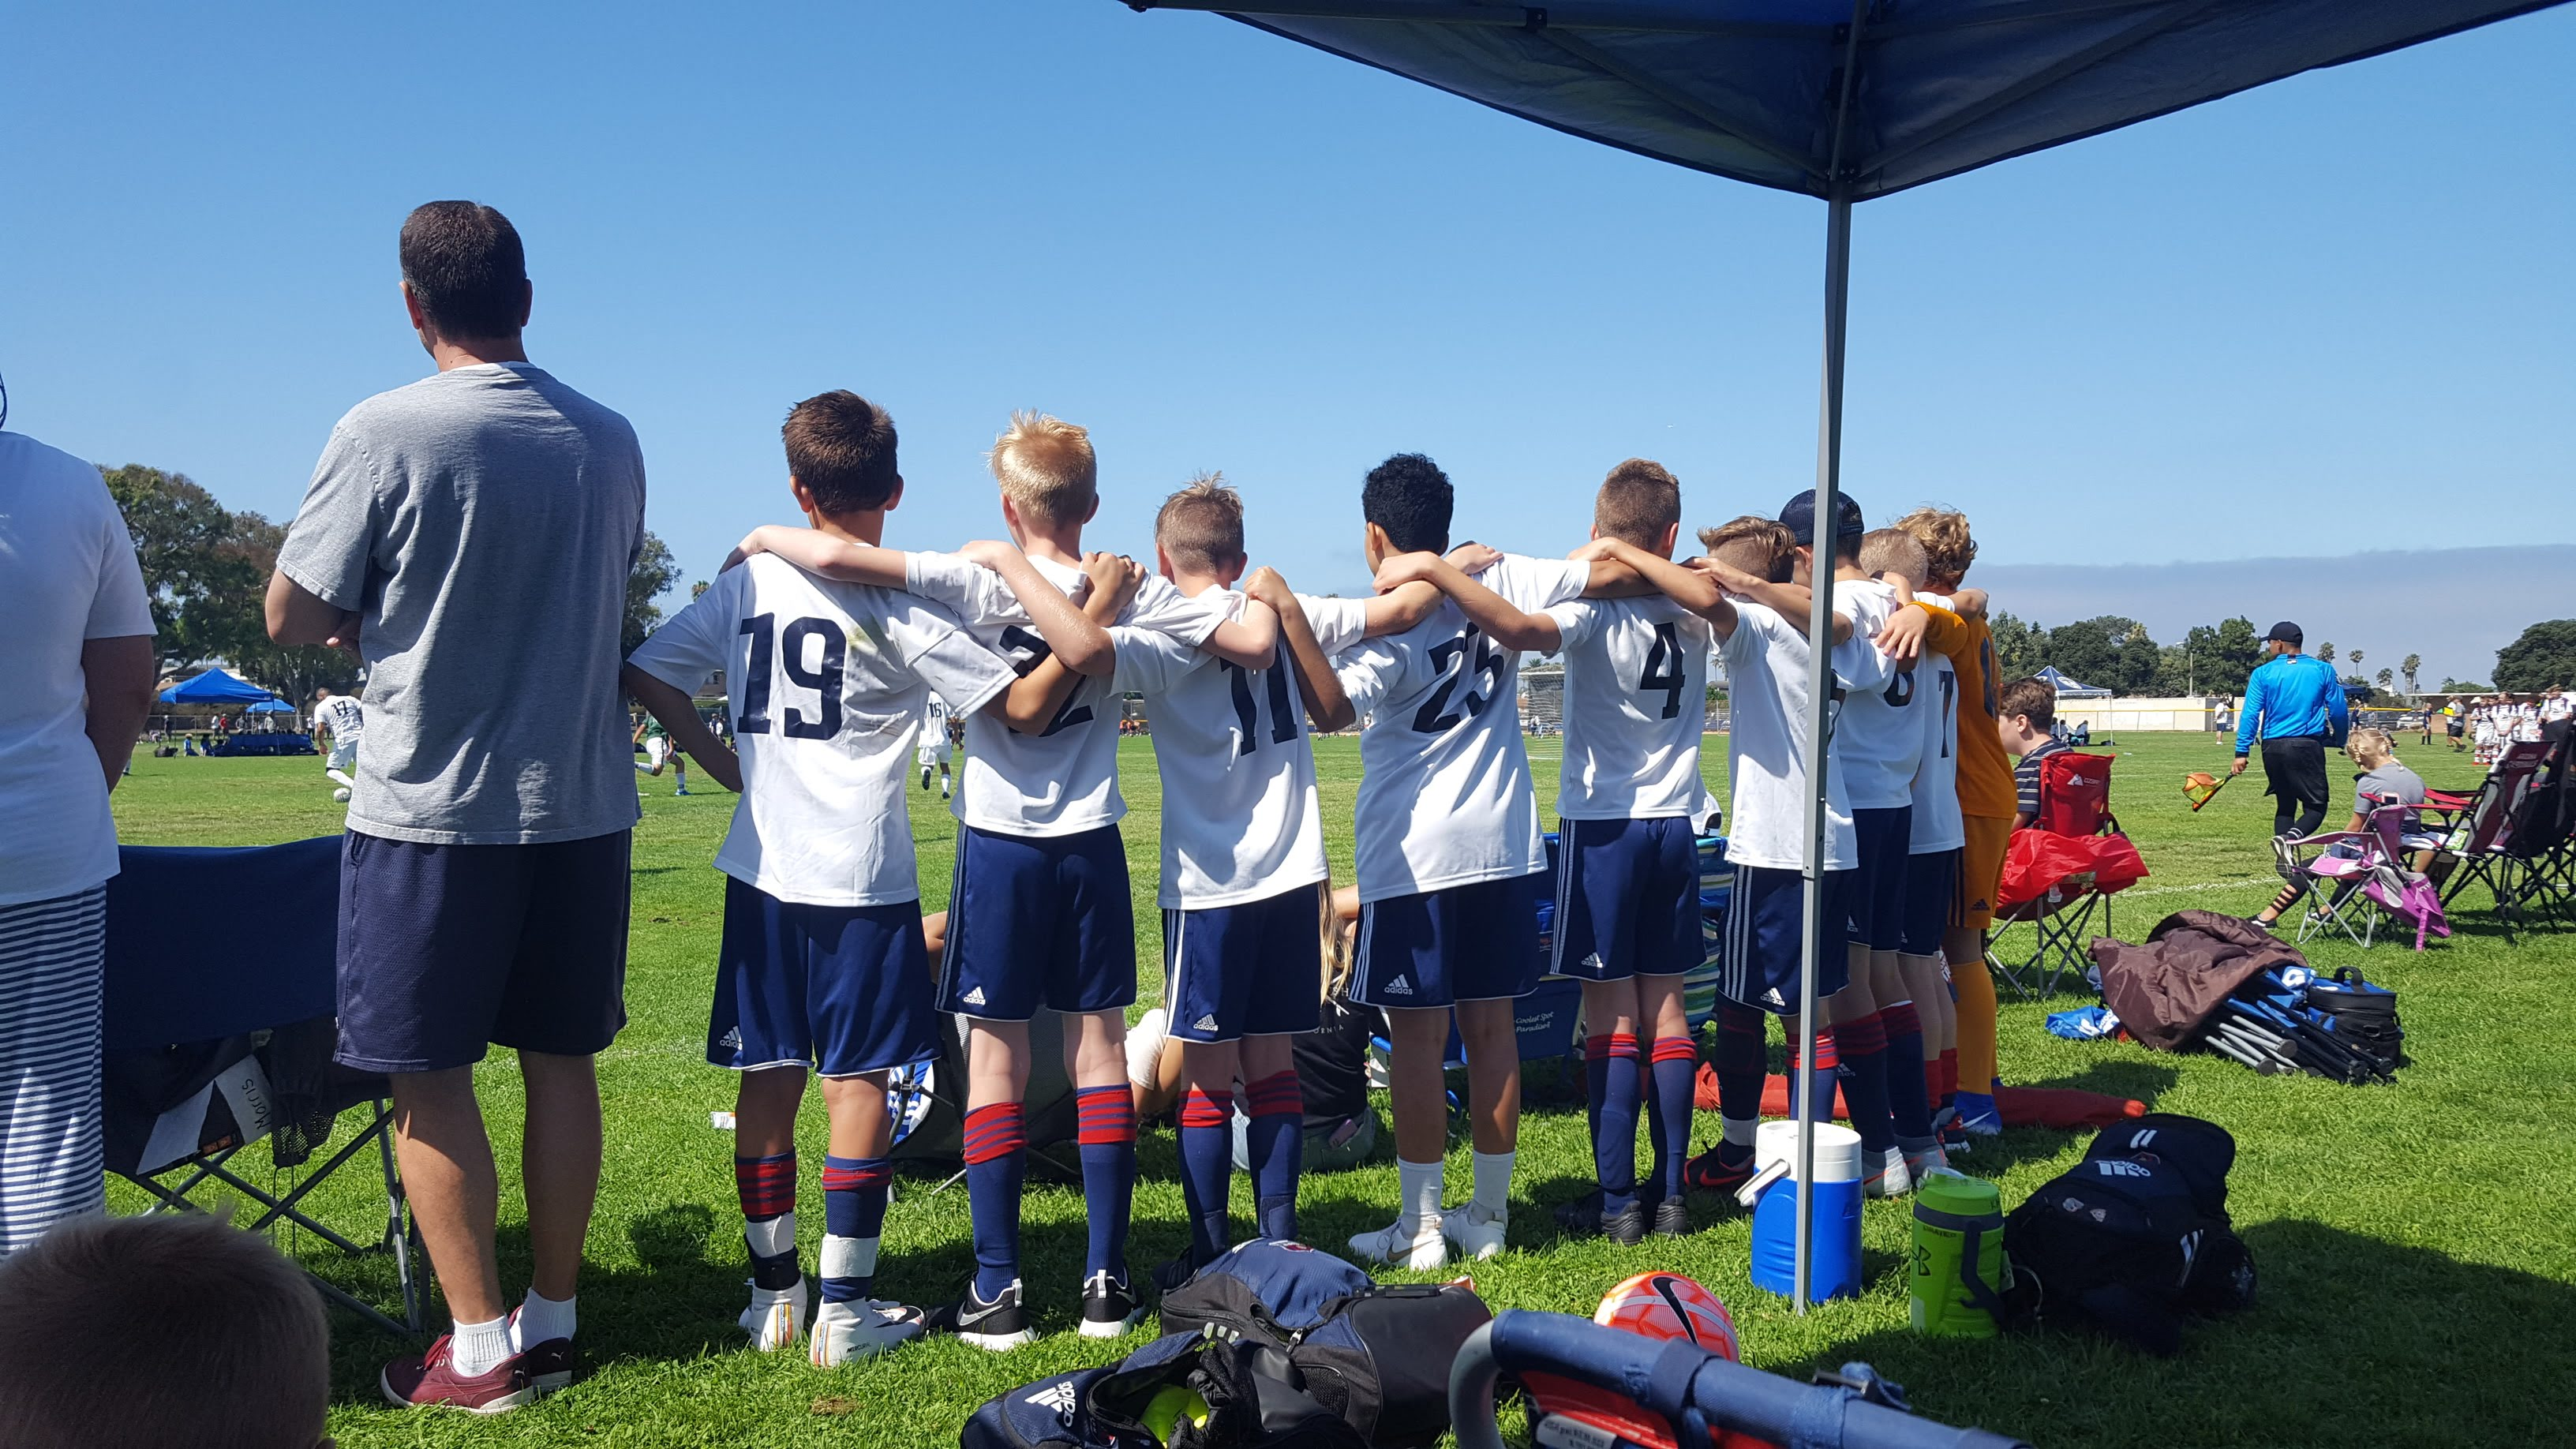 The 2007 Boys Blue soccer team stands with their arms around each other during a tournament in La Jolla in San Diego, California in September 2019.